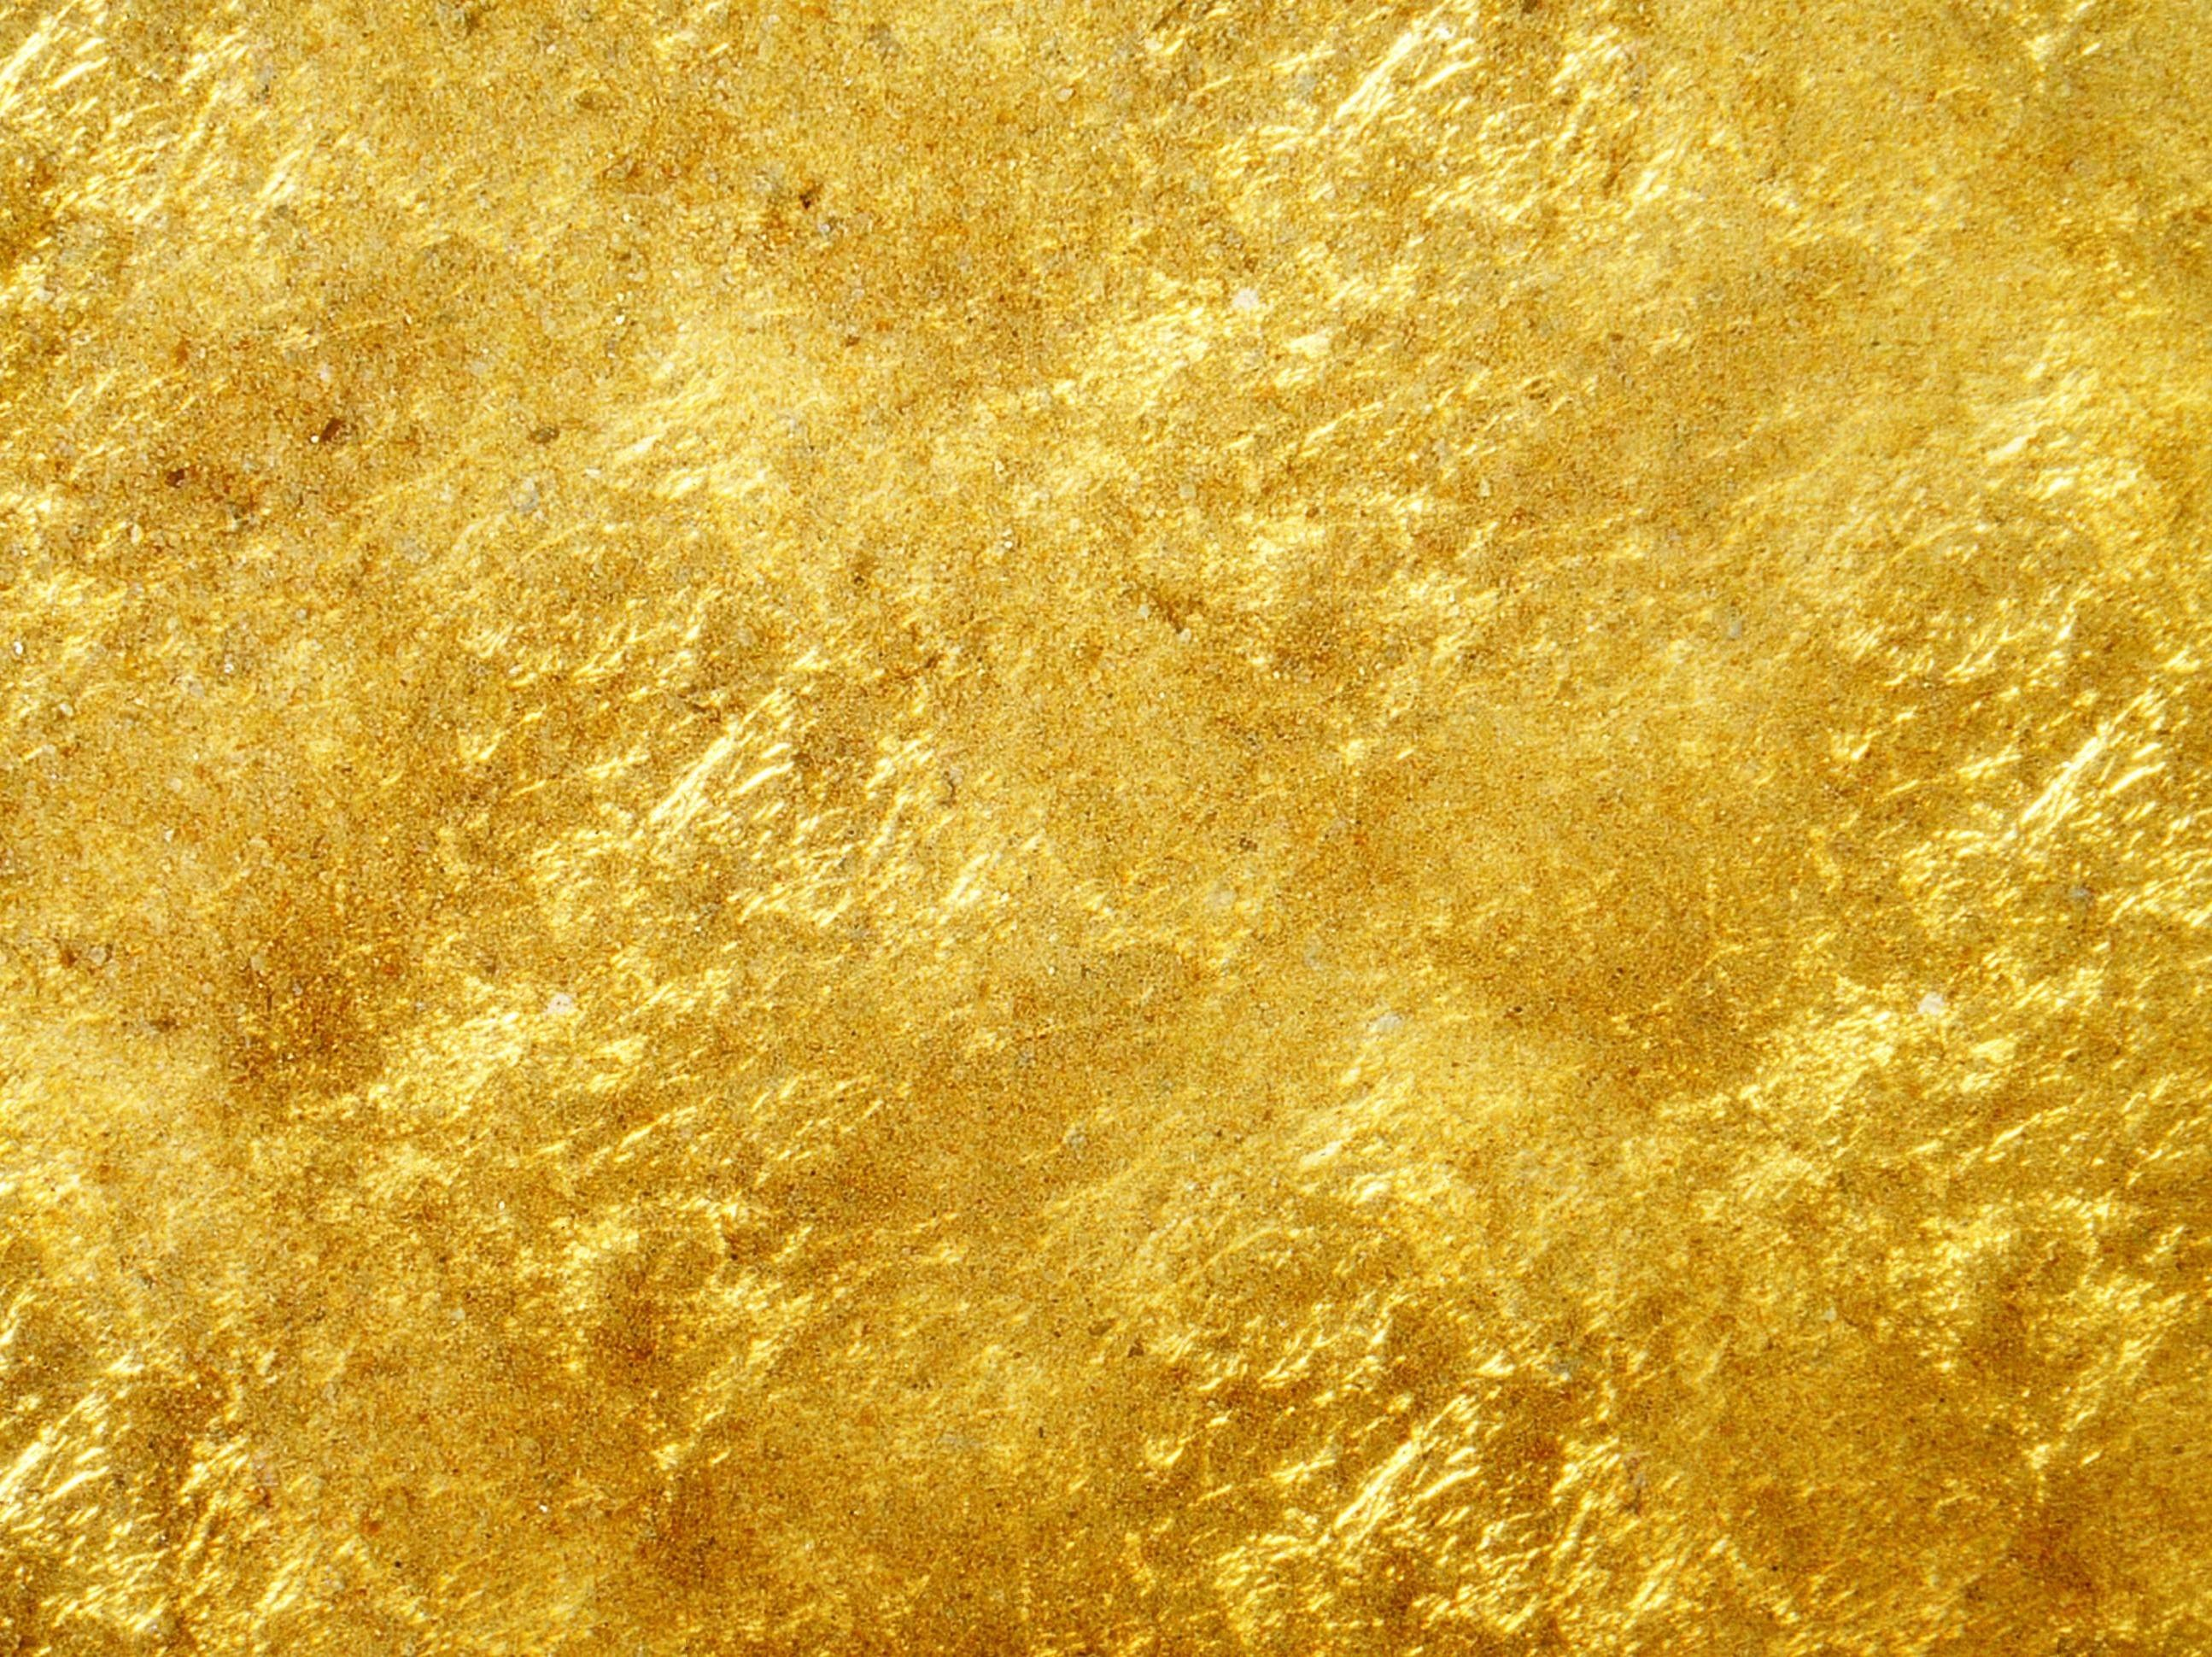 Metallic gold background download free awesome high for Metallic wallpaper